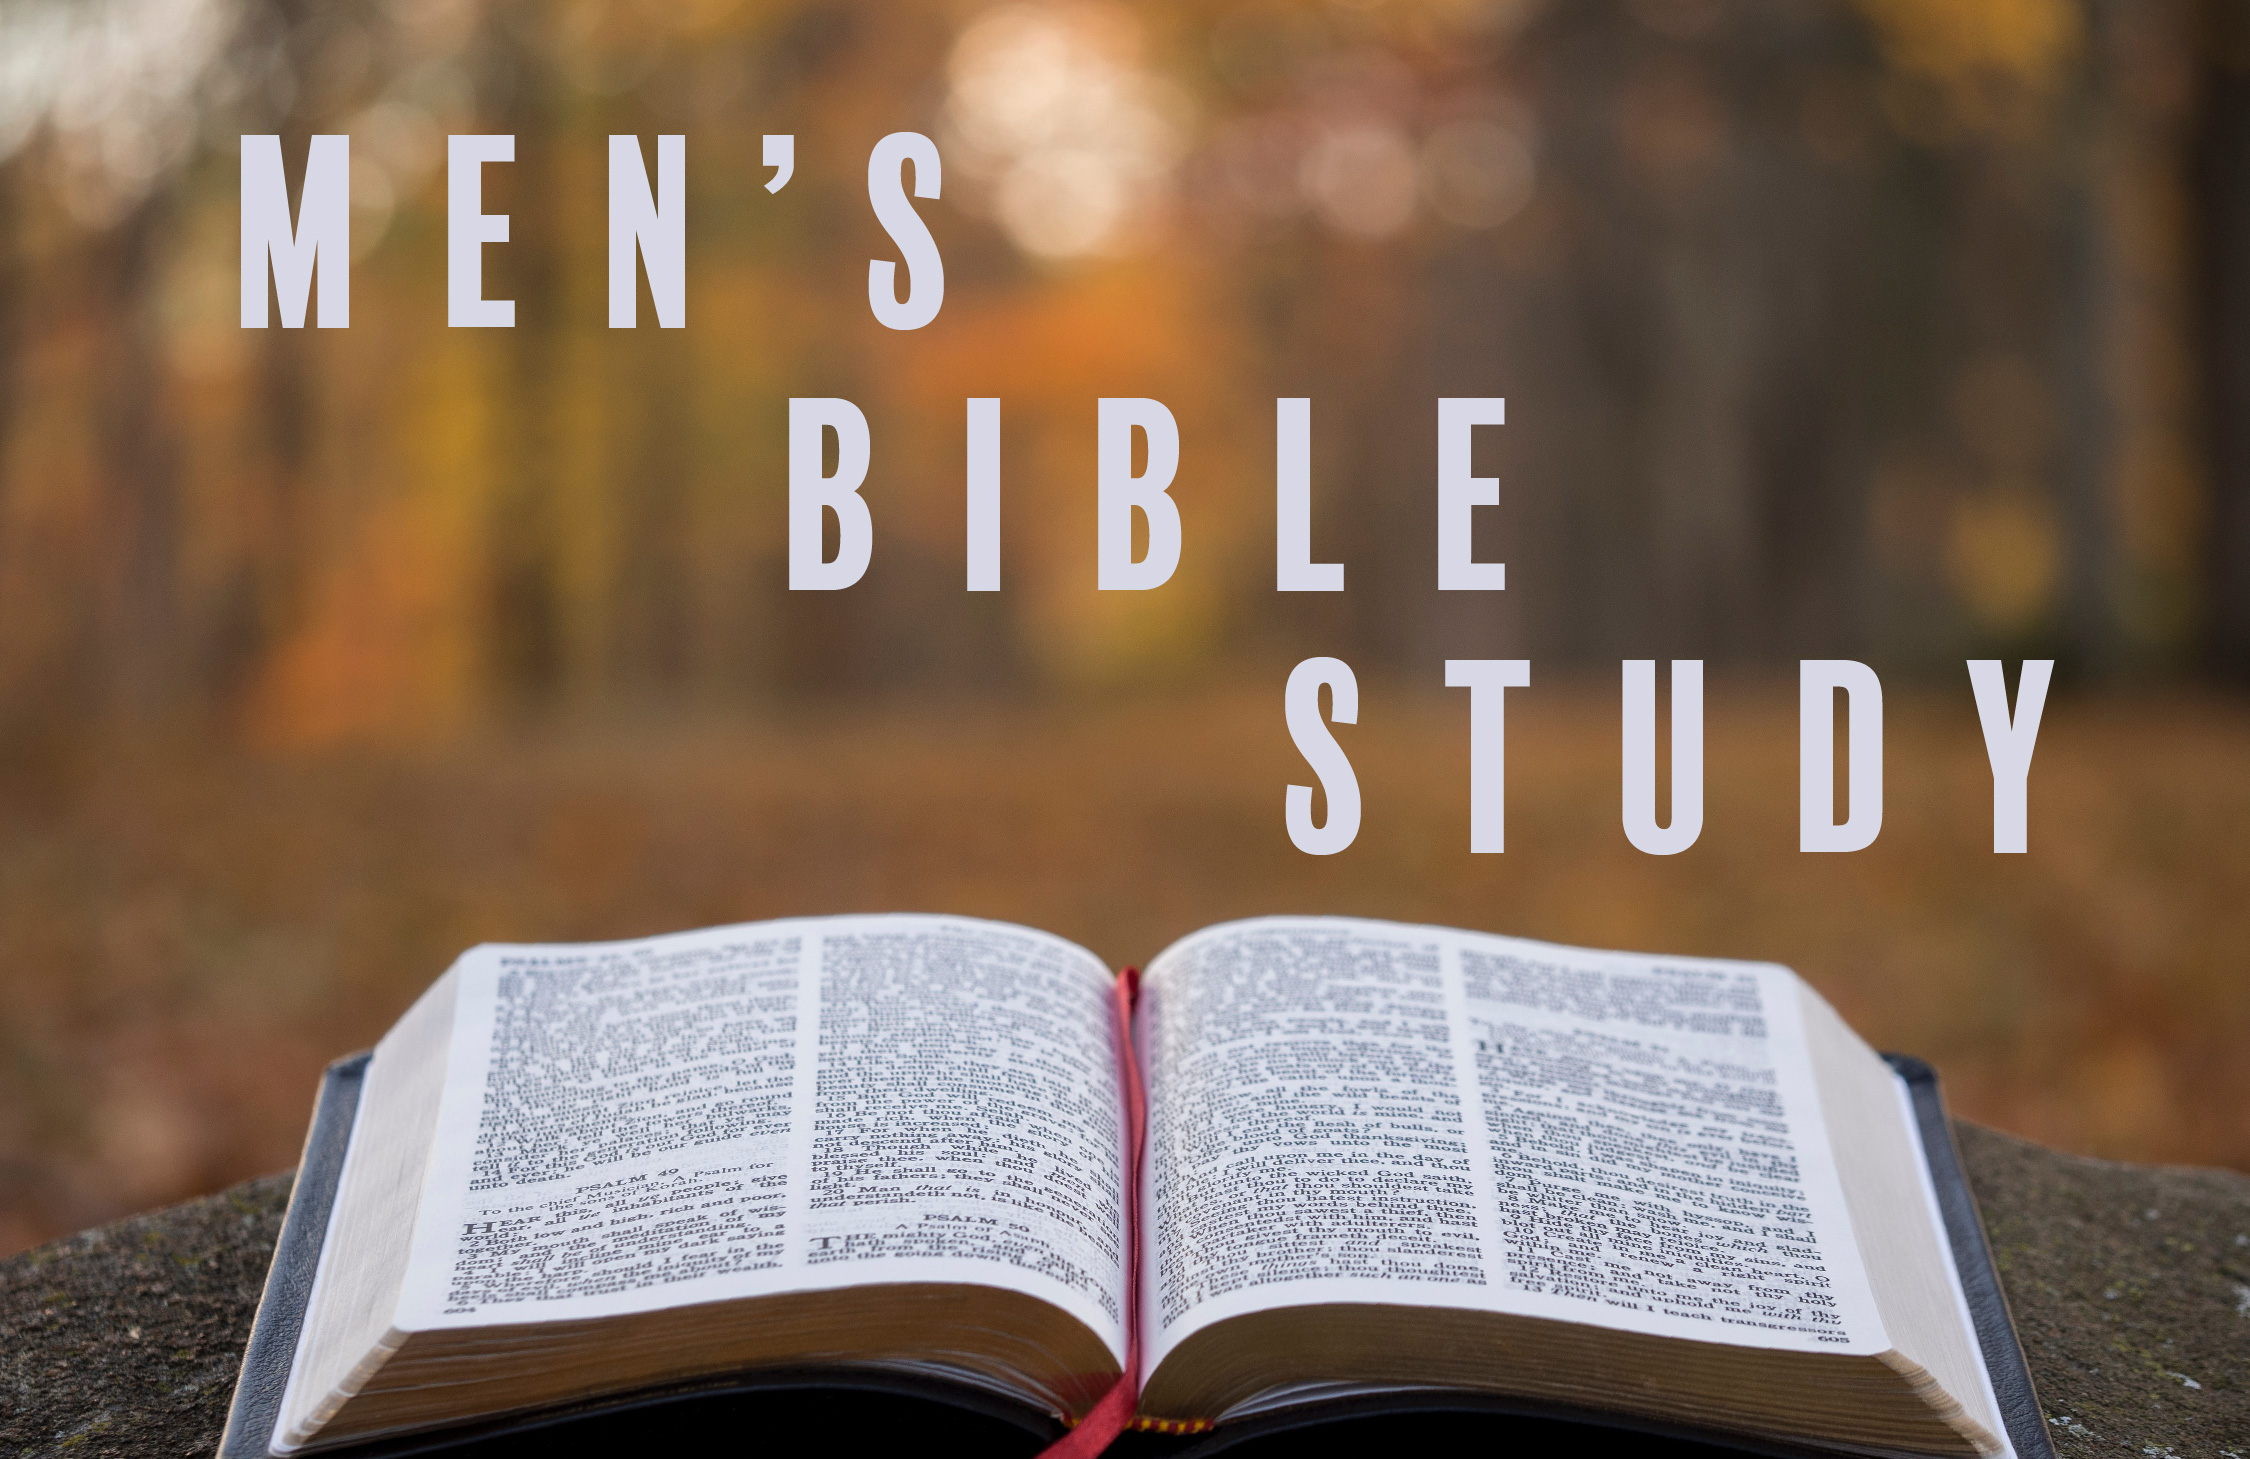 Men's Bible Study Rectangle2-01 image